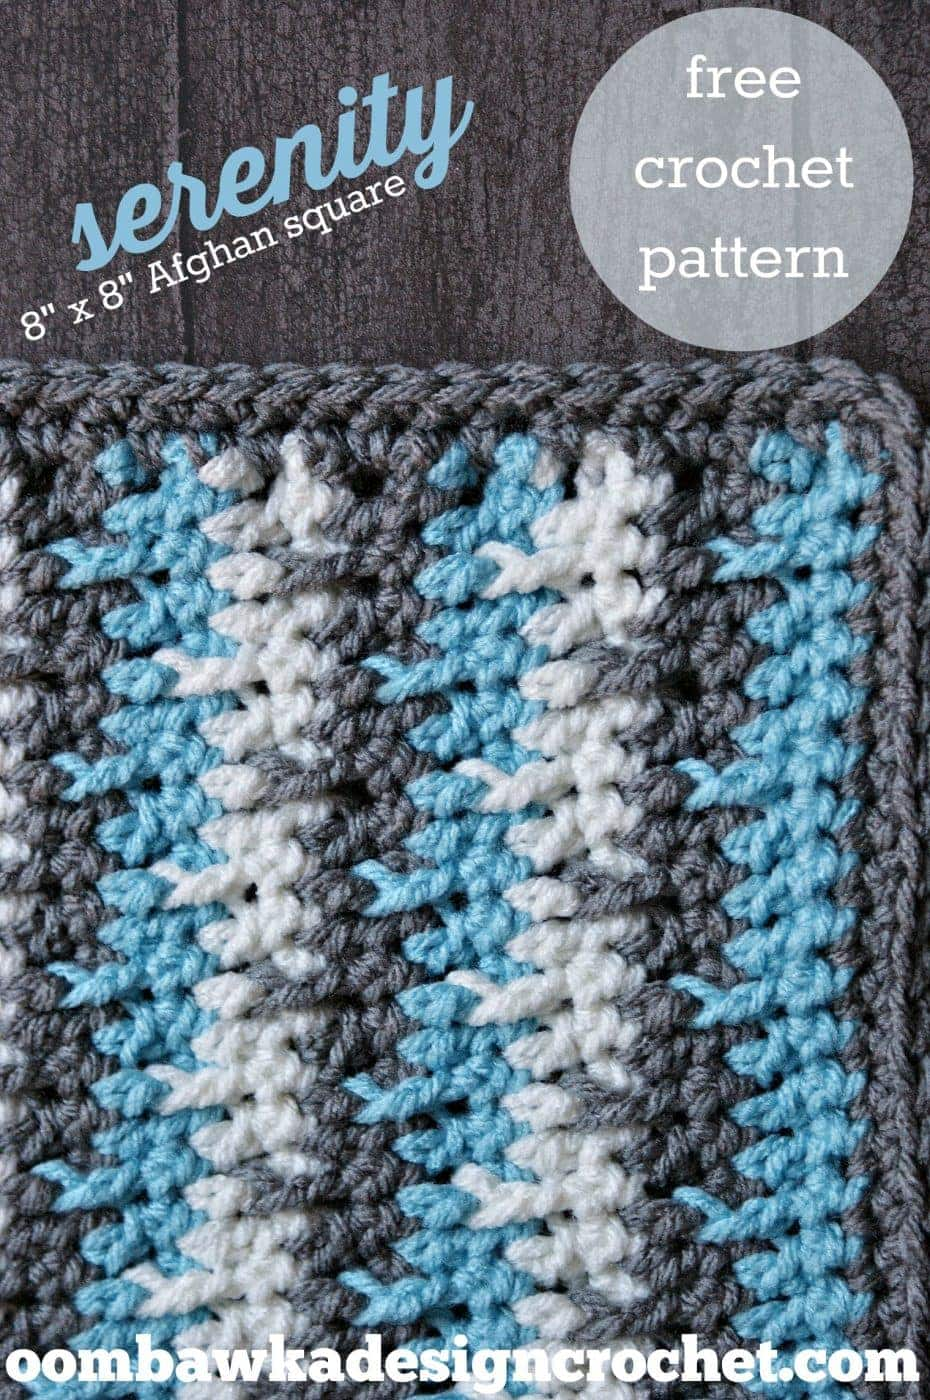 Crochet Stitches Rs : 99 Crochet Post Stitches Review ? Oombawka Design Crochet